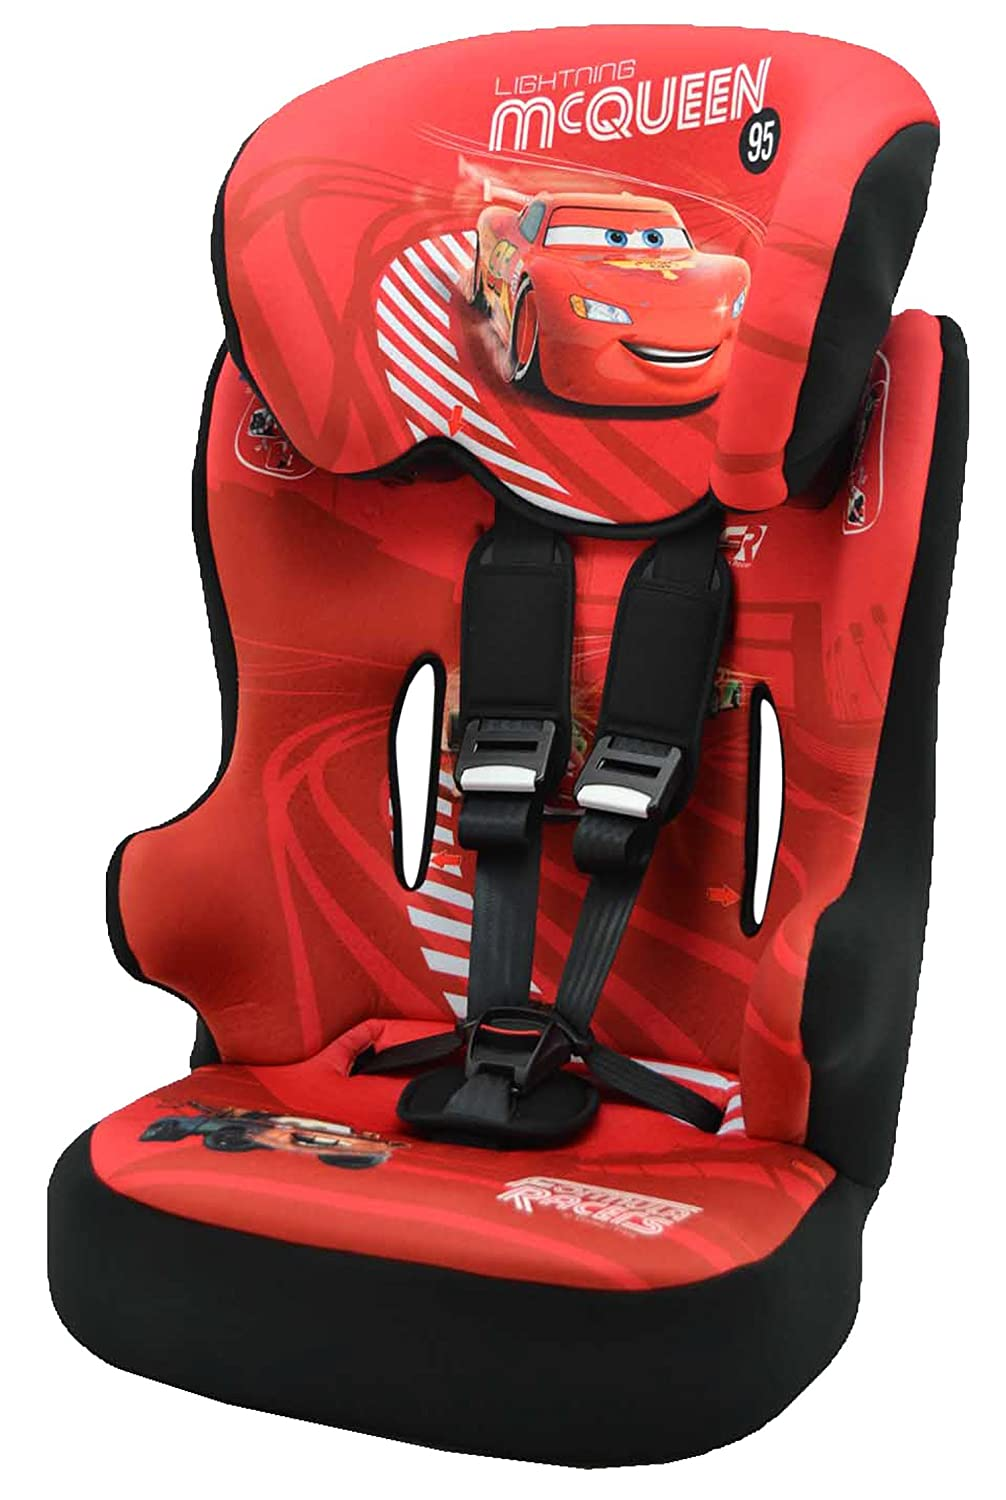 Racer Car Seat for Kids, Group 1/2/3 (9 to 36 kg), Disney Princess